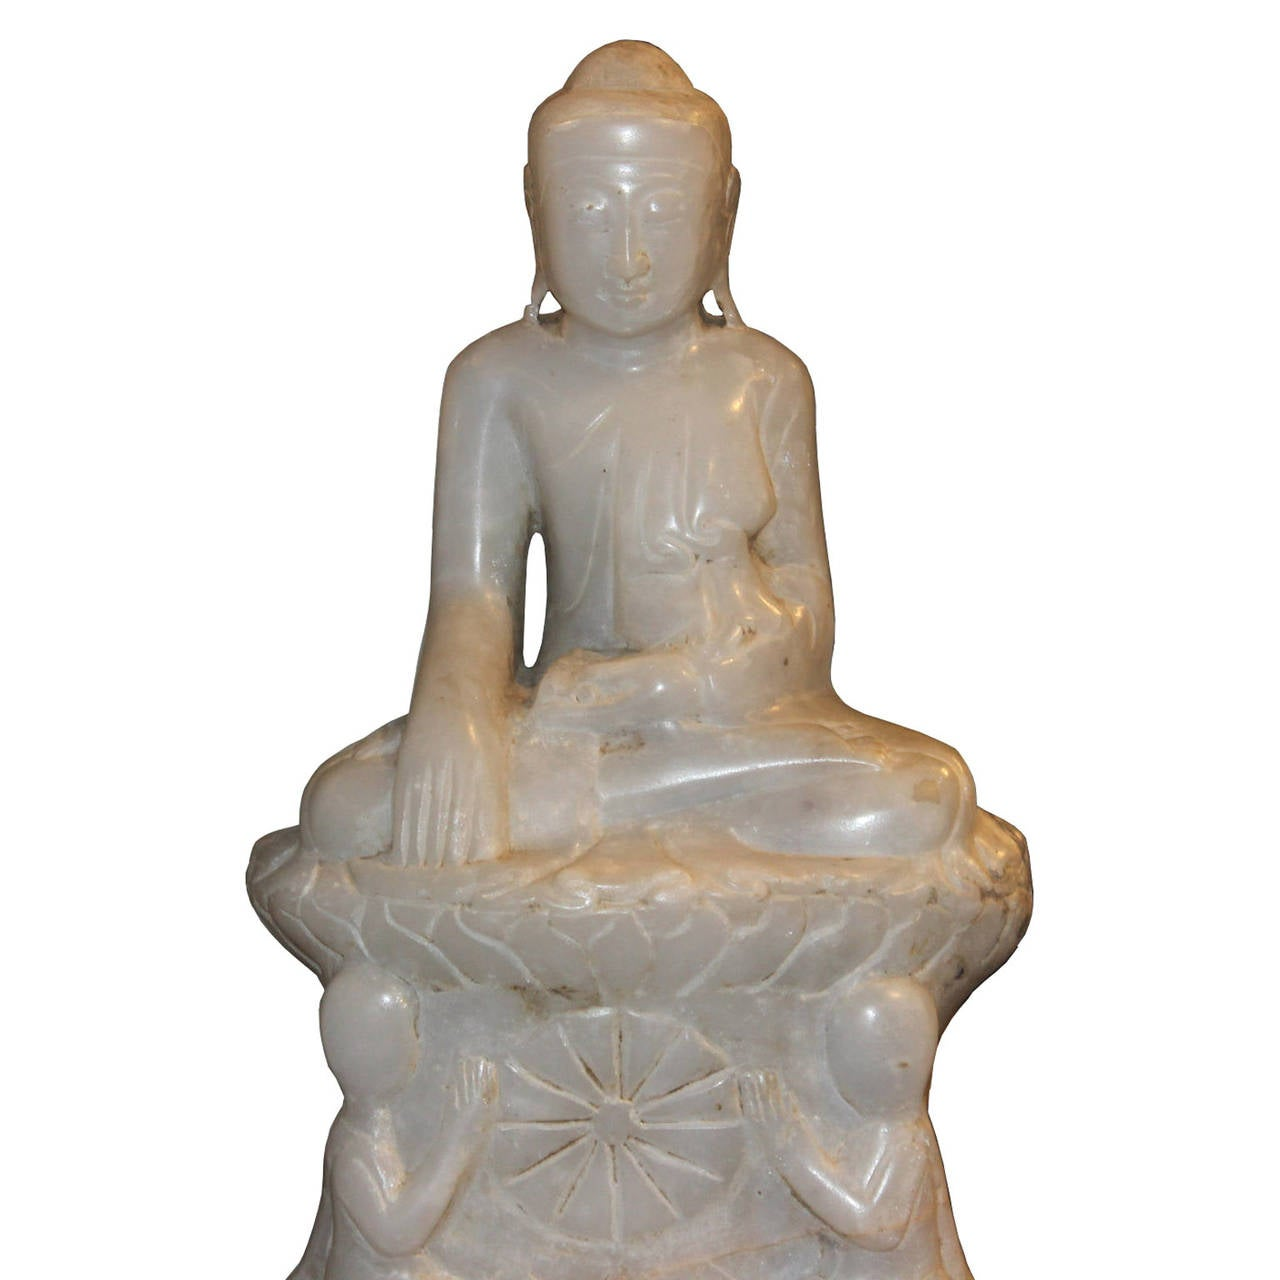 Hand-carved marble Burmese Buddha is sitting with bhumisparsha mudra or earth touching gesture with two monks praying below. Place on a console table in an entryway or on a bookshelf.